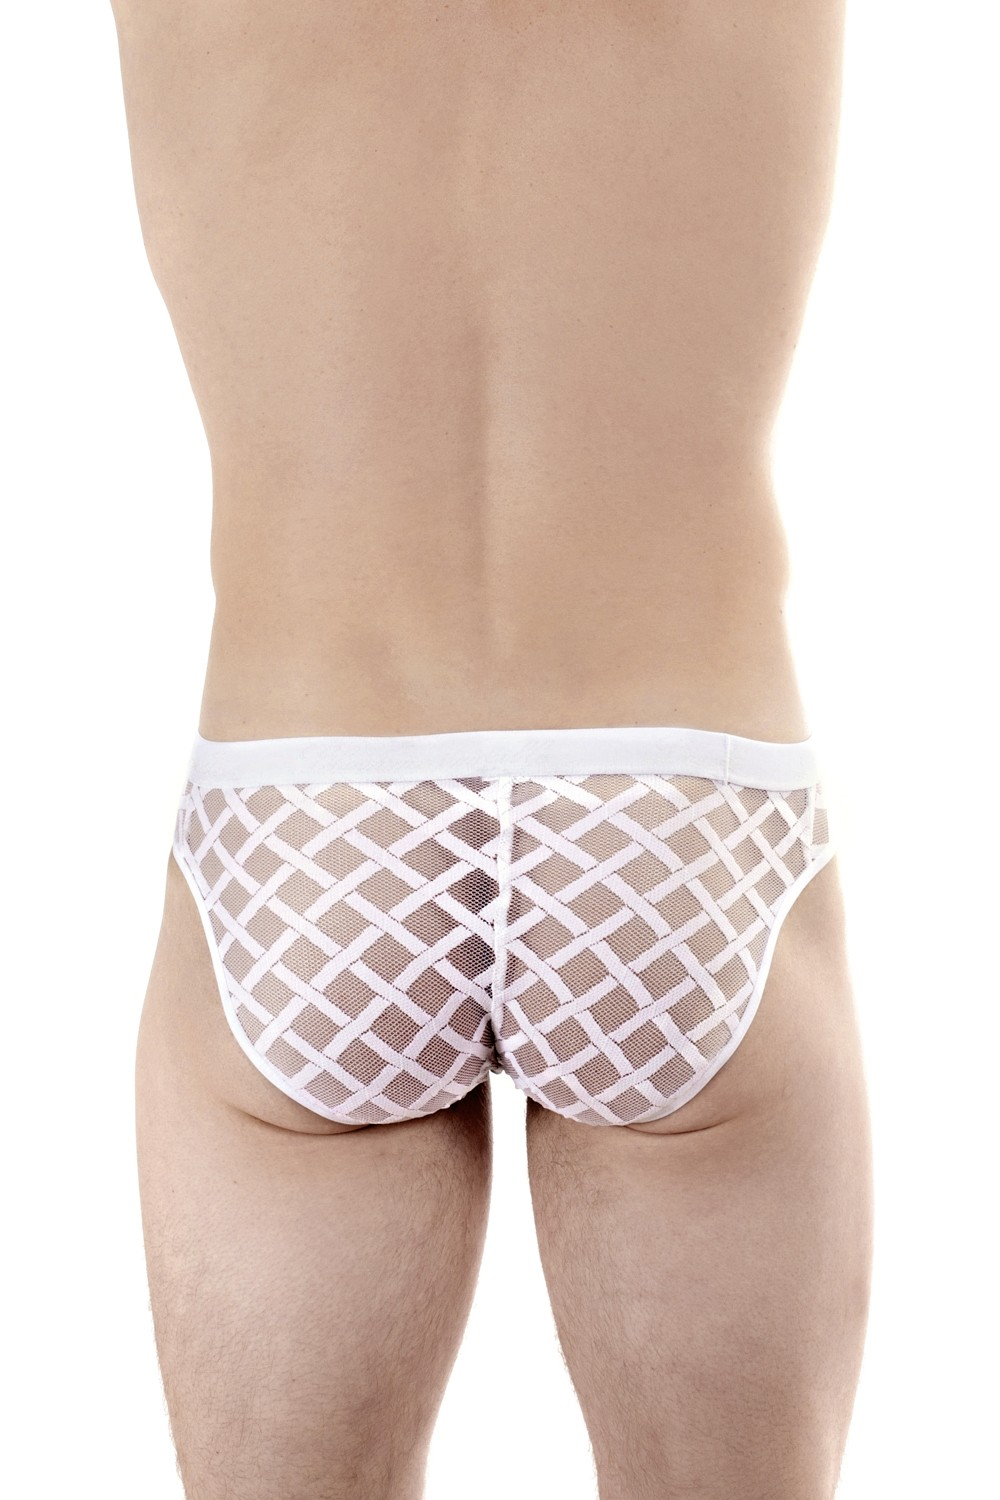 9b38d62d2d19 Nightcall Sexy Back Briefs white | L'Homme invisible Mens Lace ...